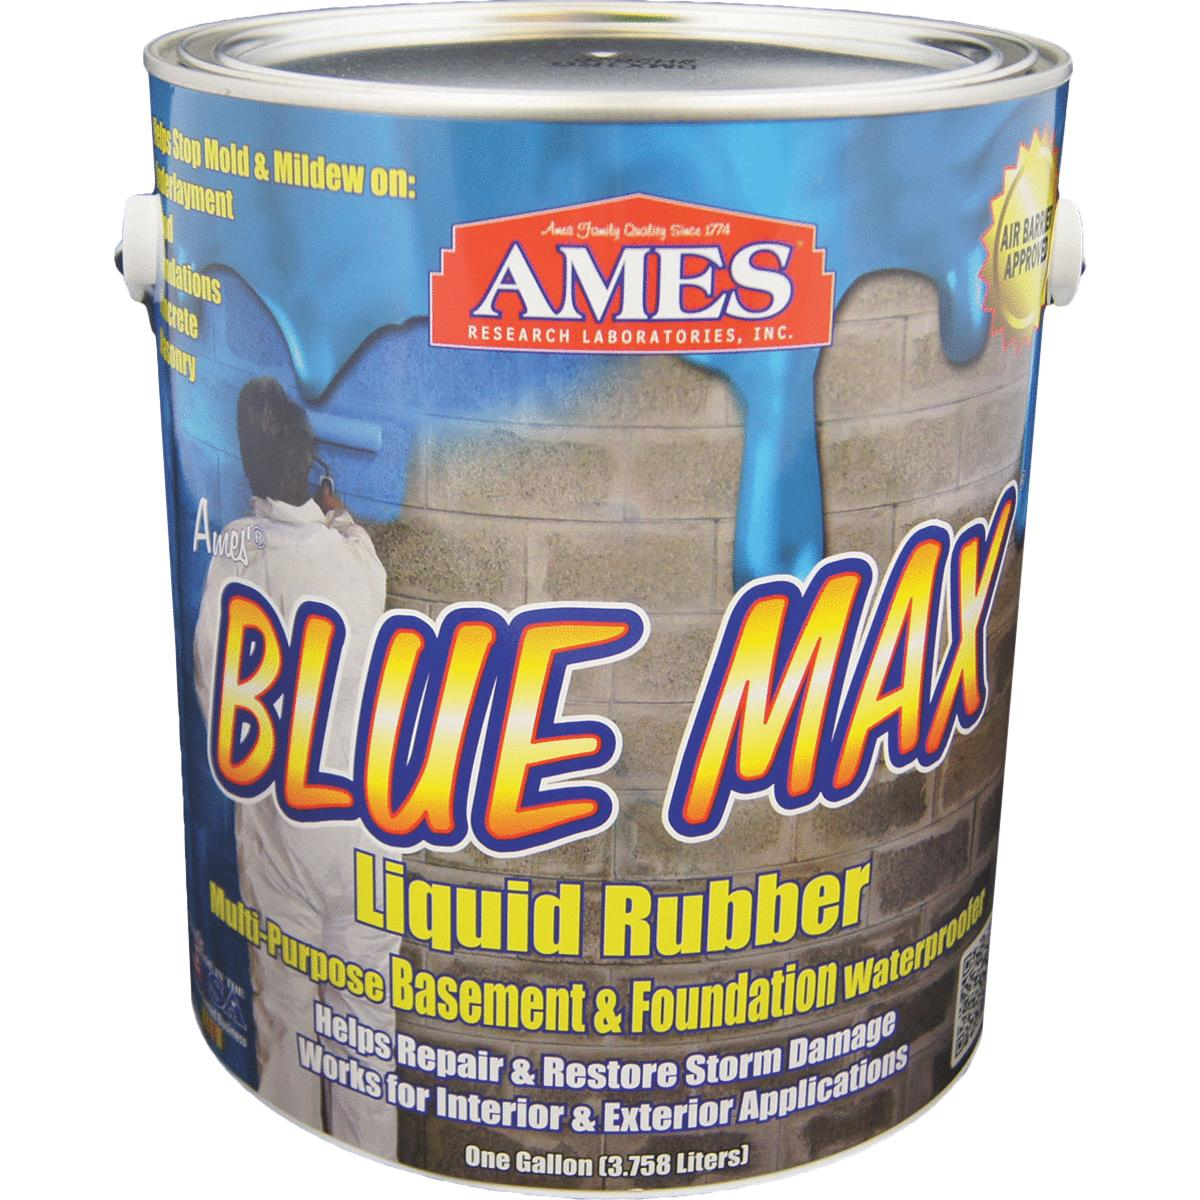 Ames Blue Max Liquid Rubber Membrane Waterproofing Coating 1 Gal , Blue